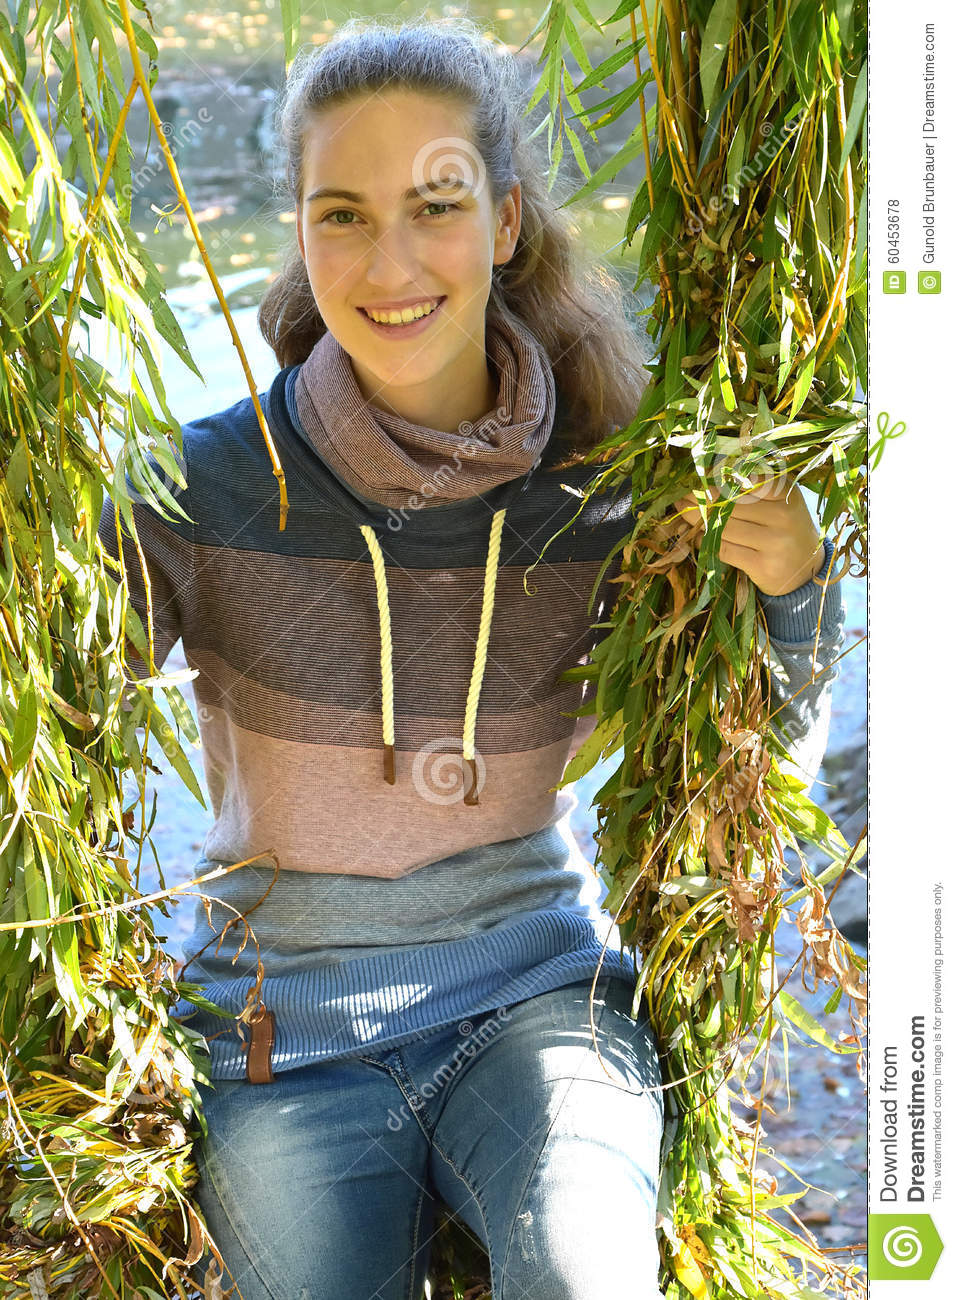 Girl in the leaves of a weeping willow